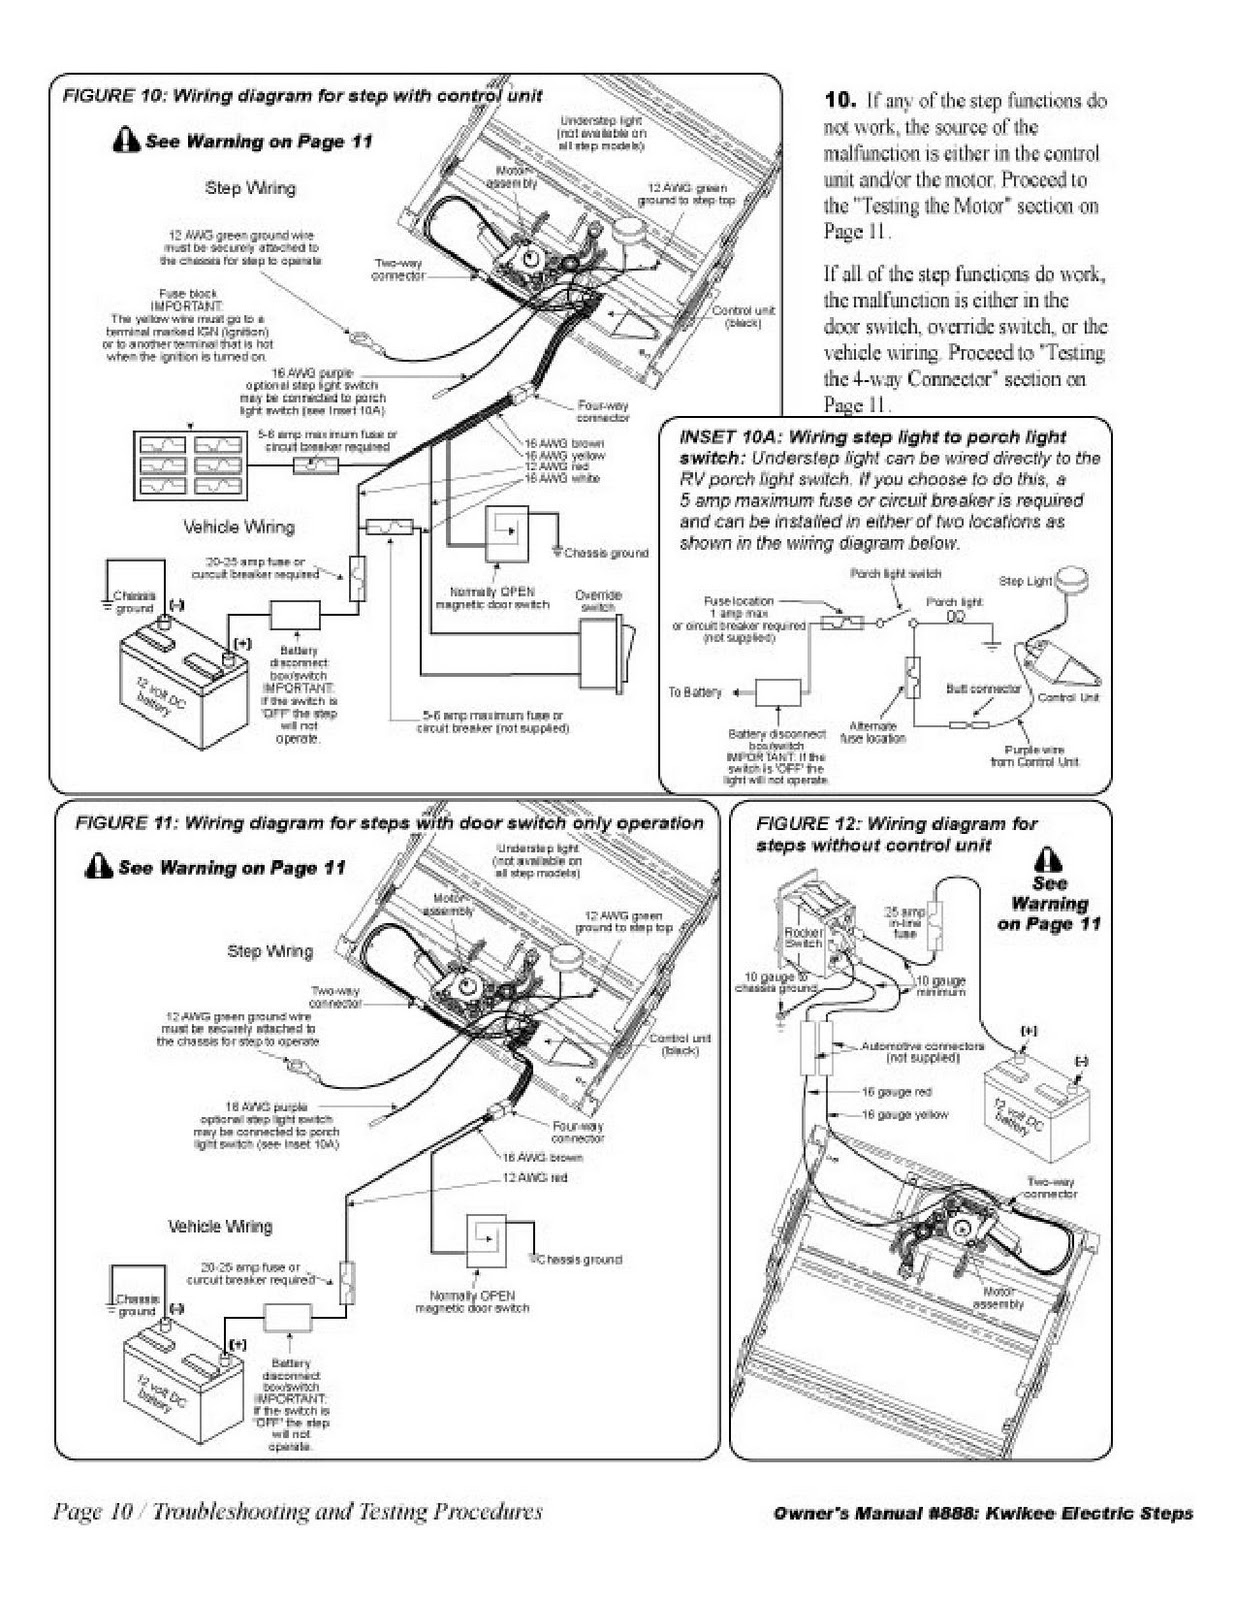 rv step wiring diagram wiring diagram wiring diagram for rv step [ 1236 x 1600 Pixel ]